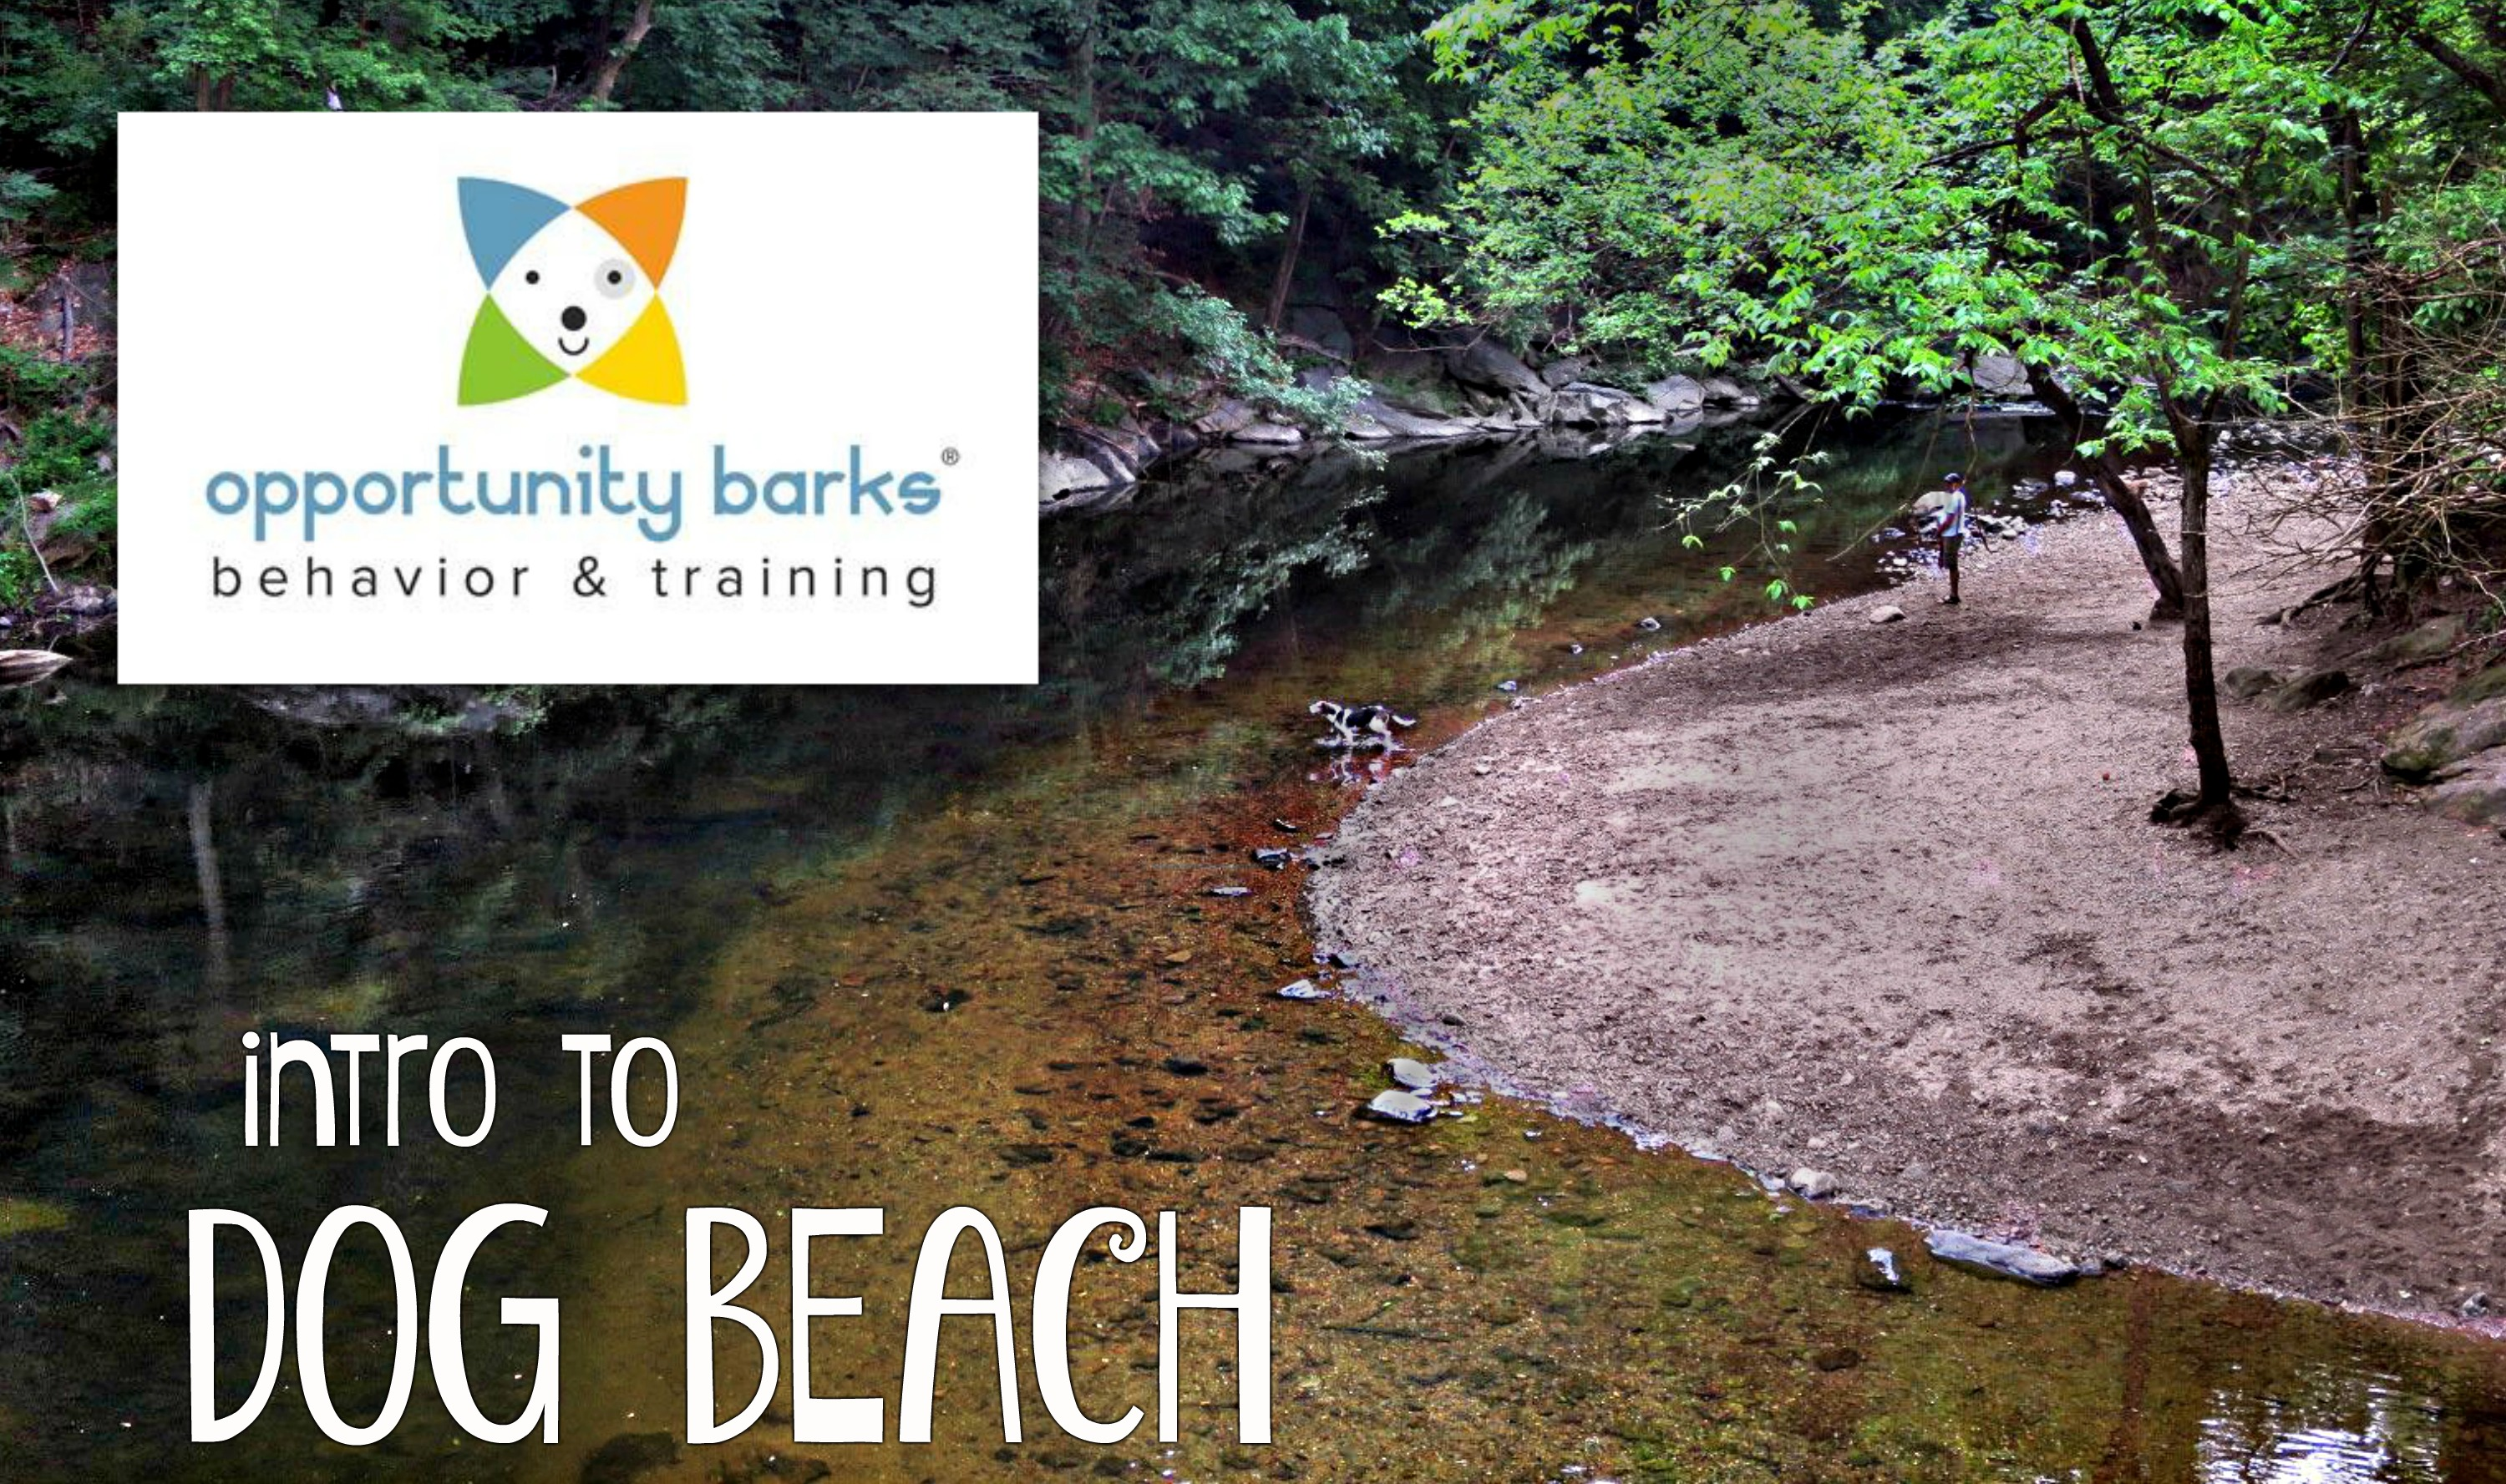 EastFallsLocal resize intro to dog beach Op Barks